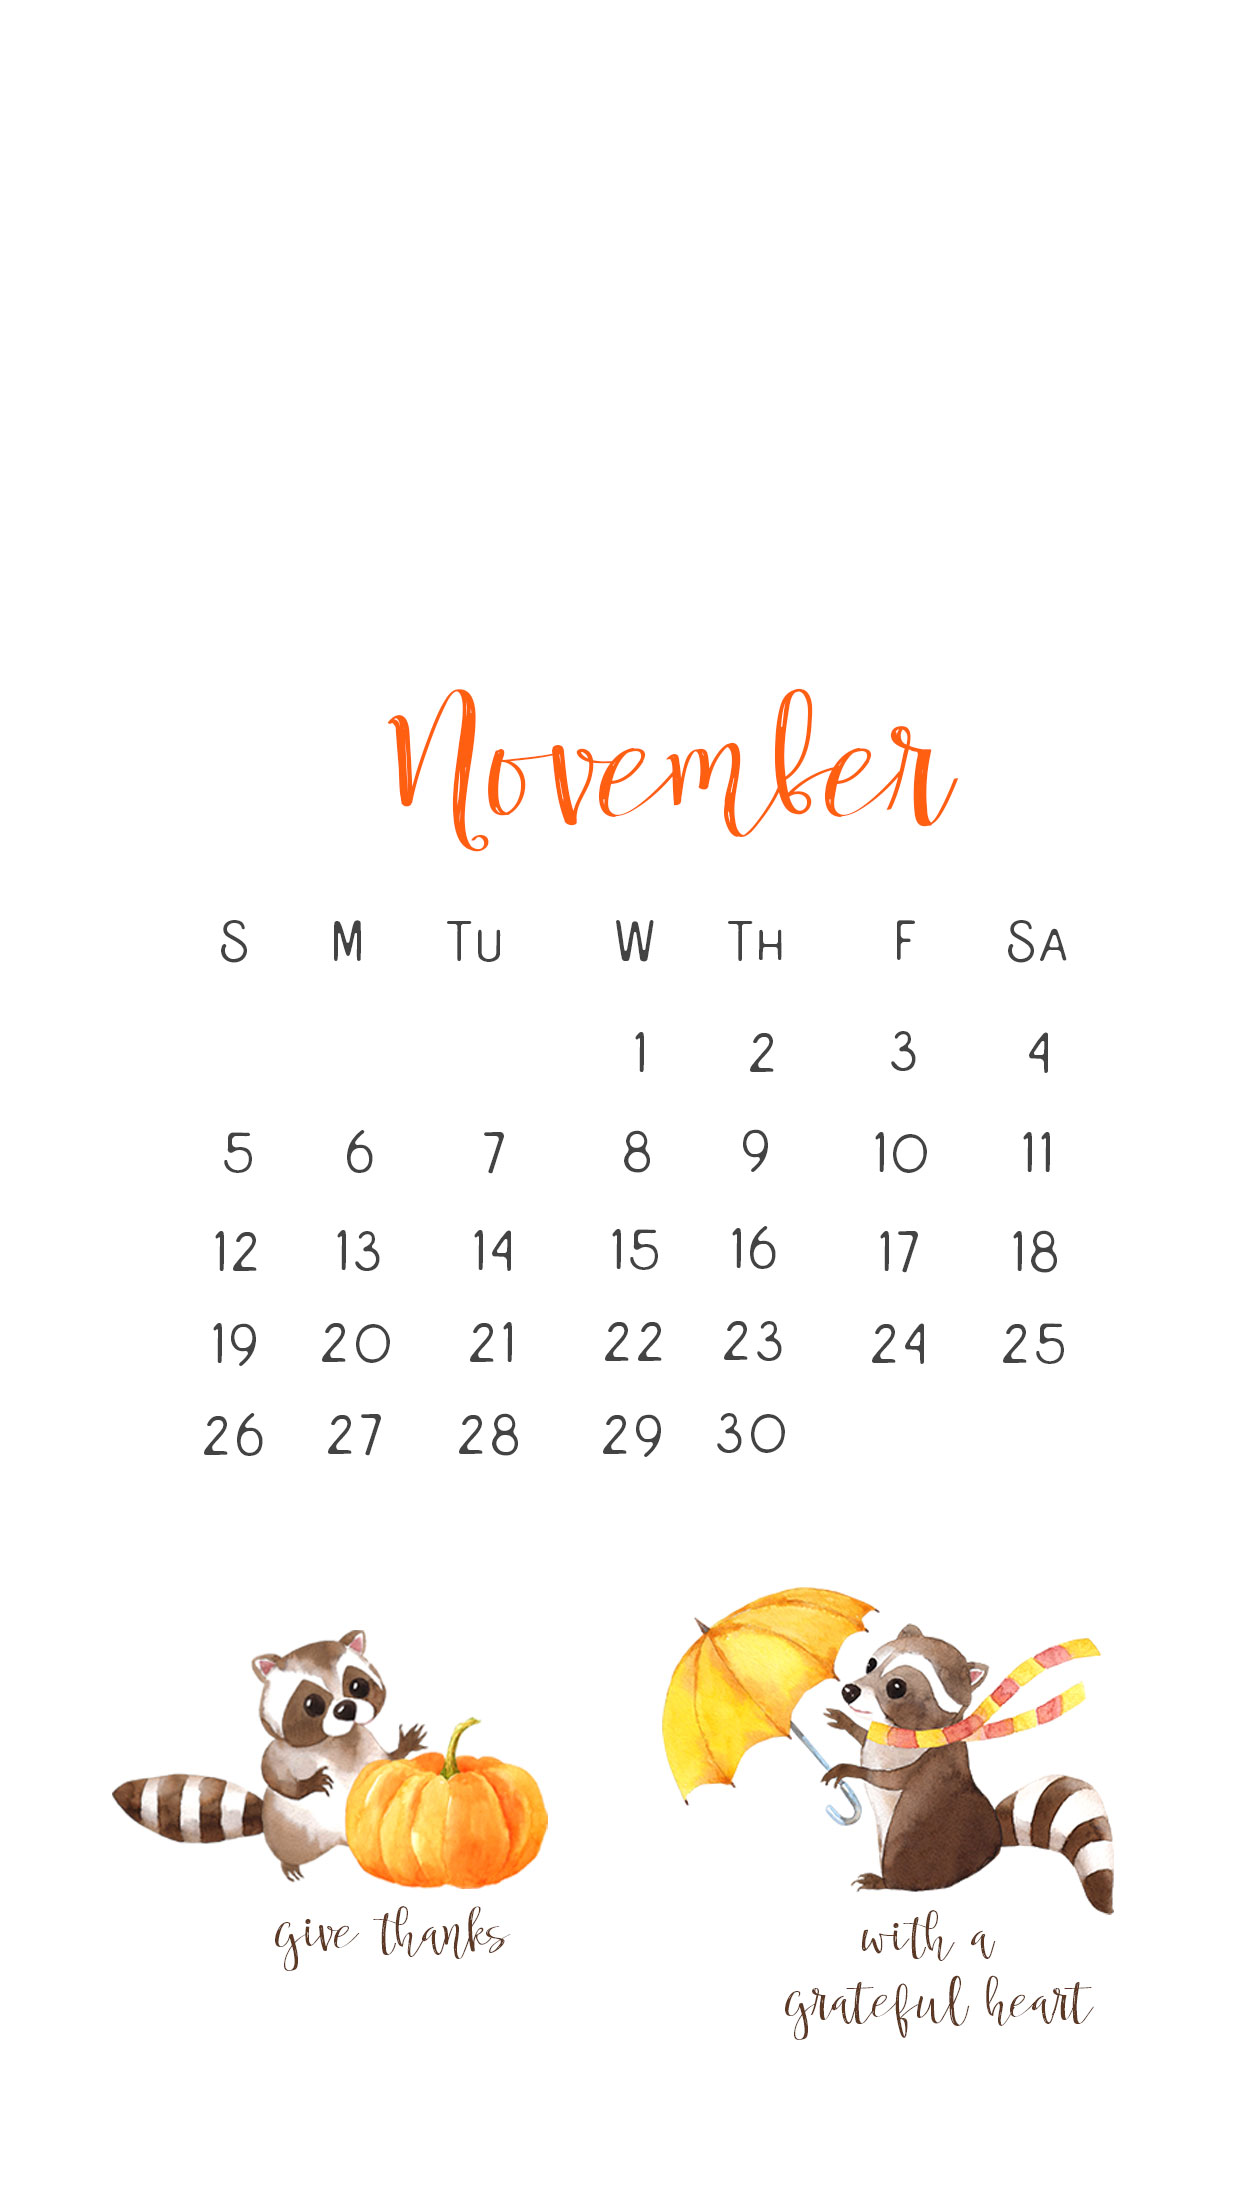 November Calendar Wallpaper For Iphone : Dailydwelling — quot dwell on these things phil